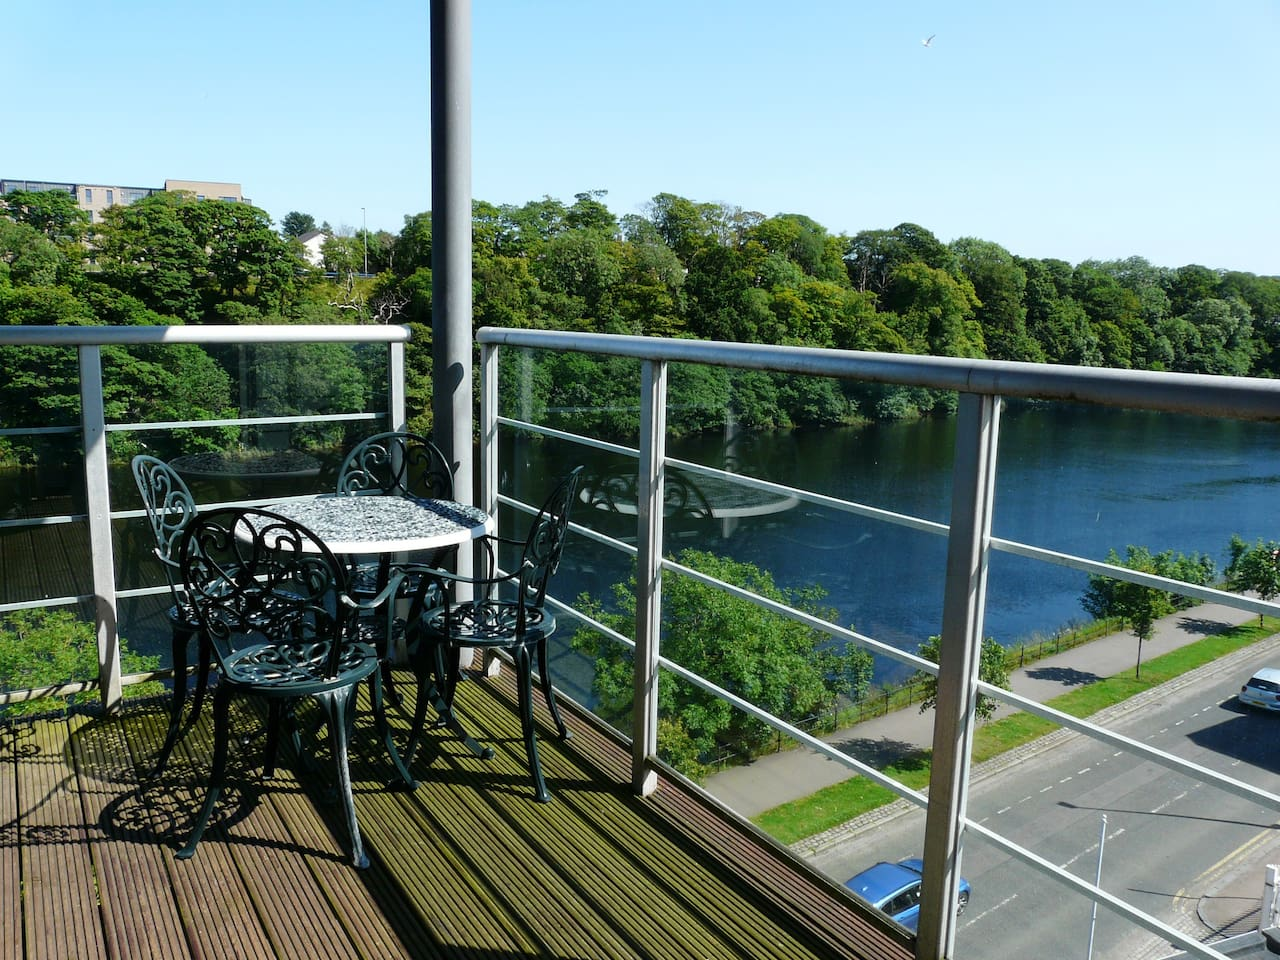 Fantastic views as you sit and enjoy a dram or a glass of wine.